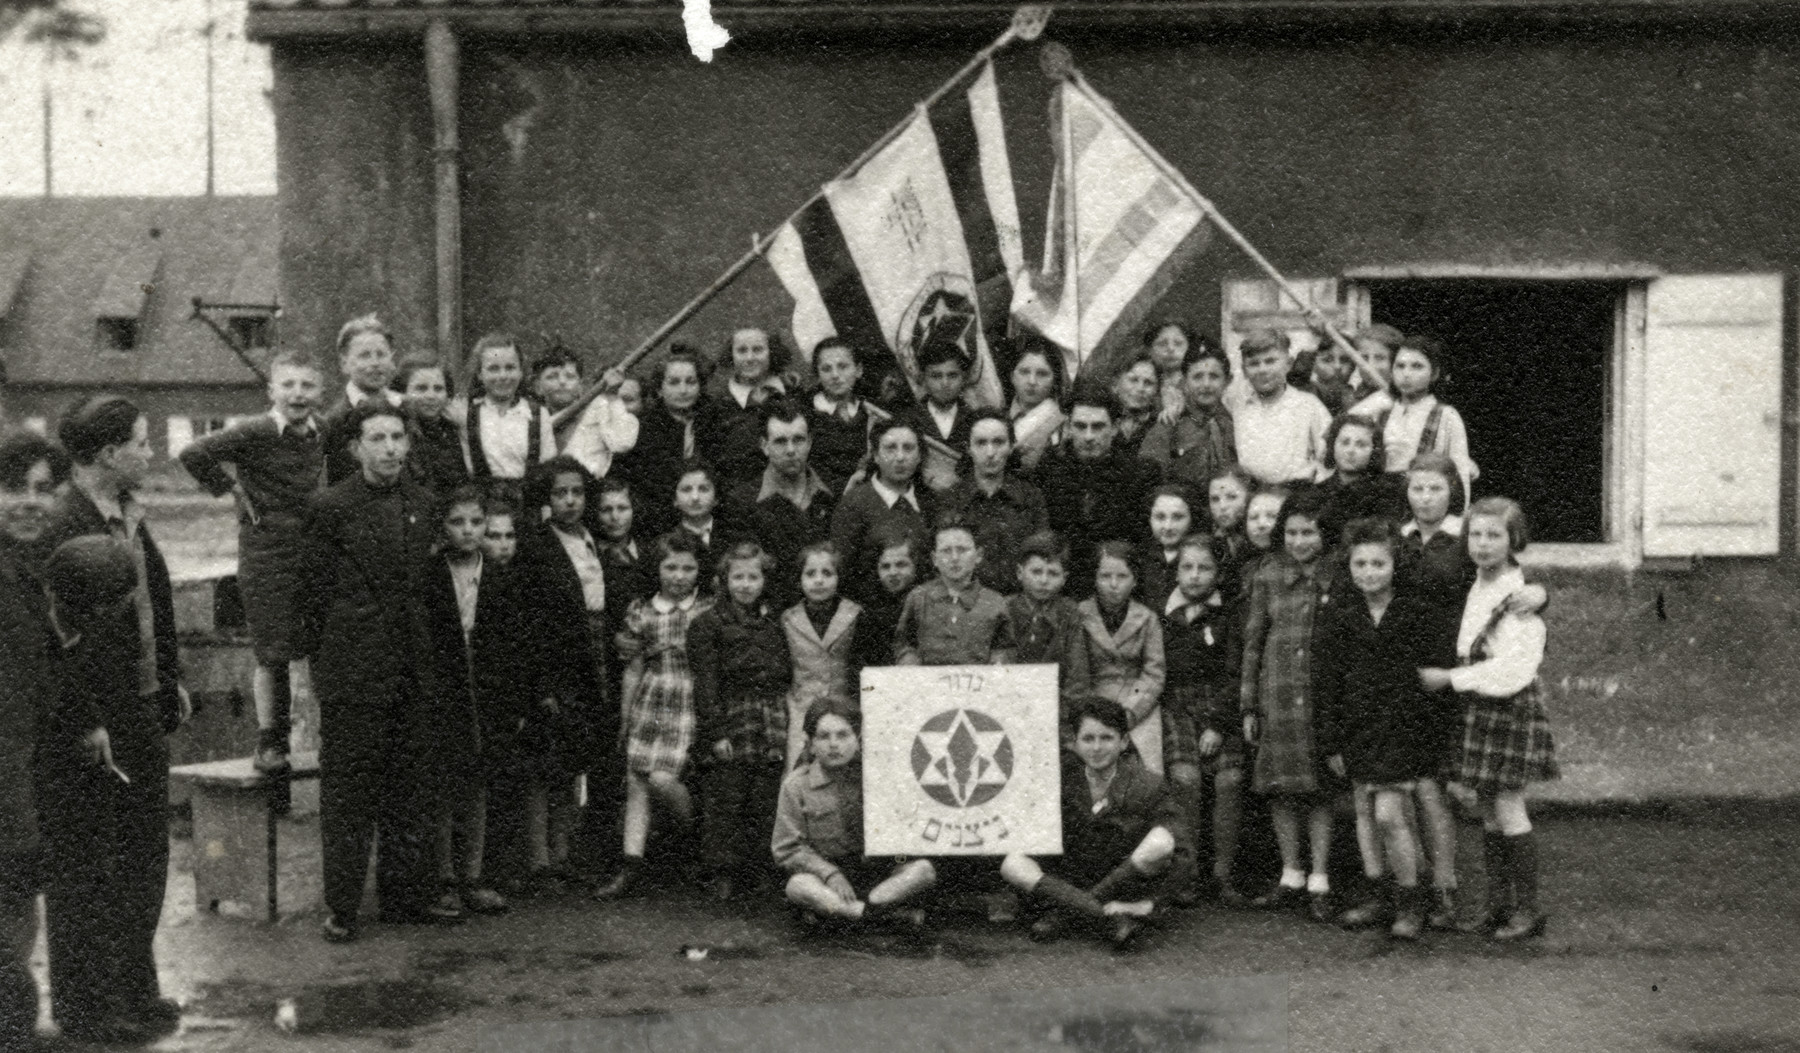 Zionist youth belonging to the Nitzanim group of Hashomer Hatzioni pose underneath two flags.  Ziomek Hammer is pictured in the top row, fourth from right.